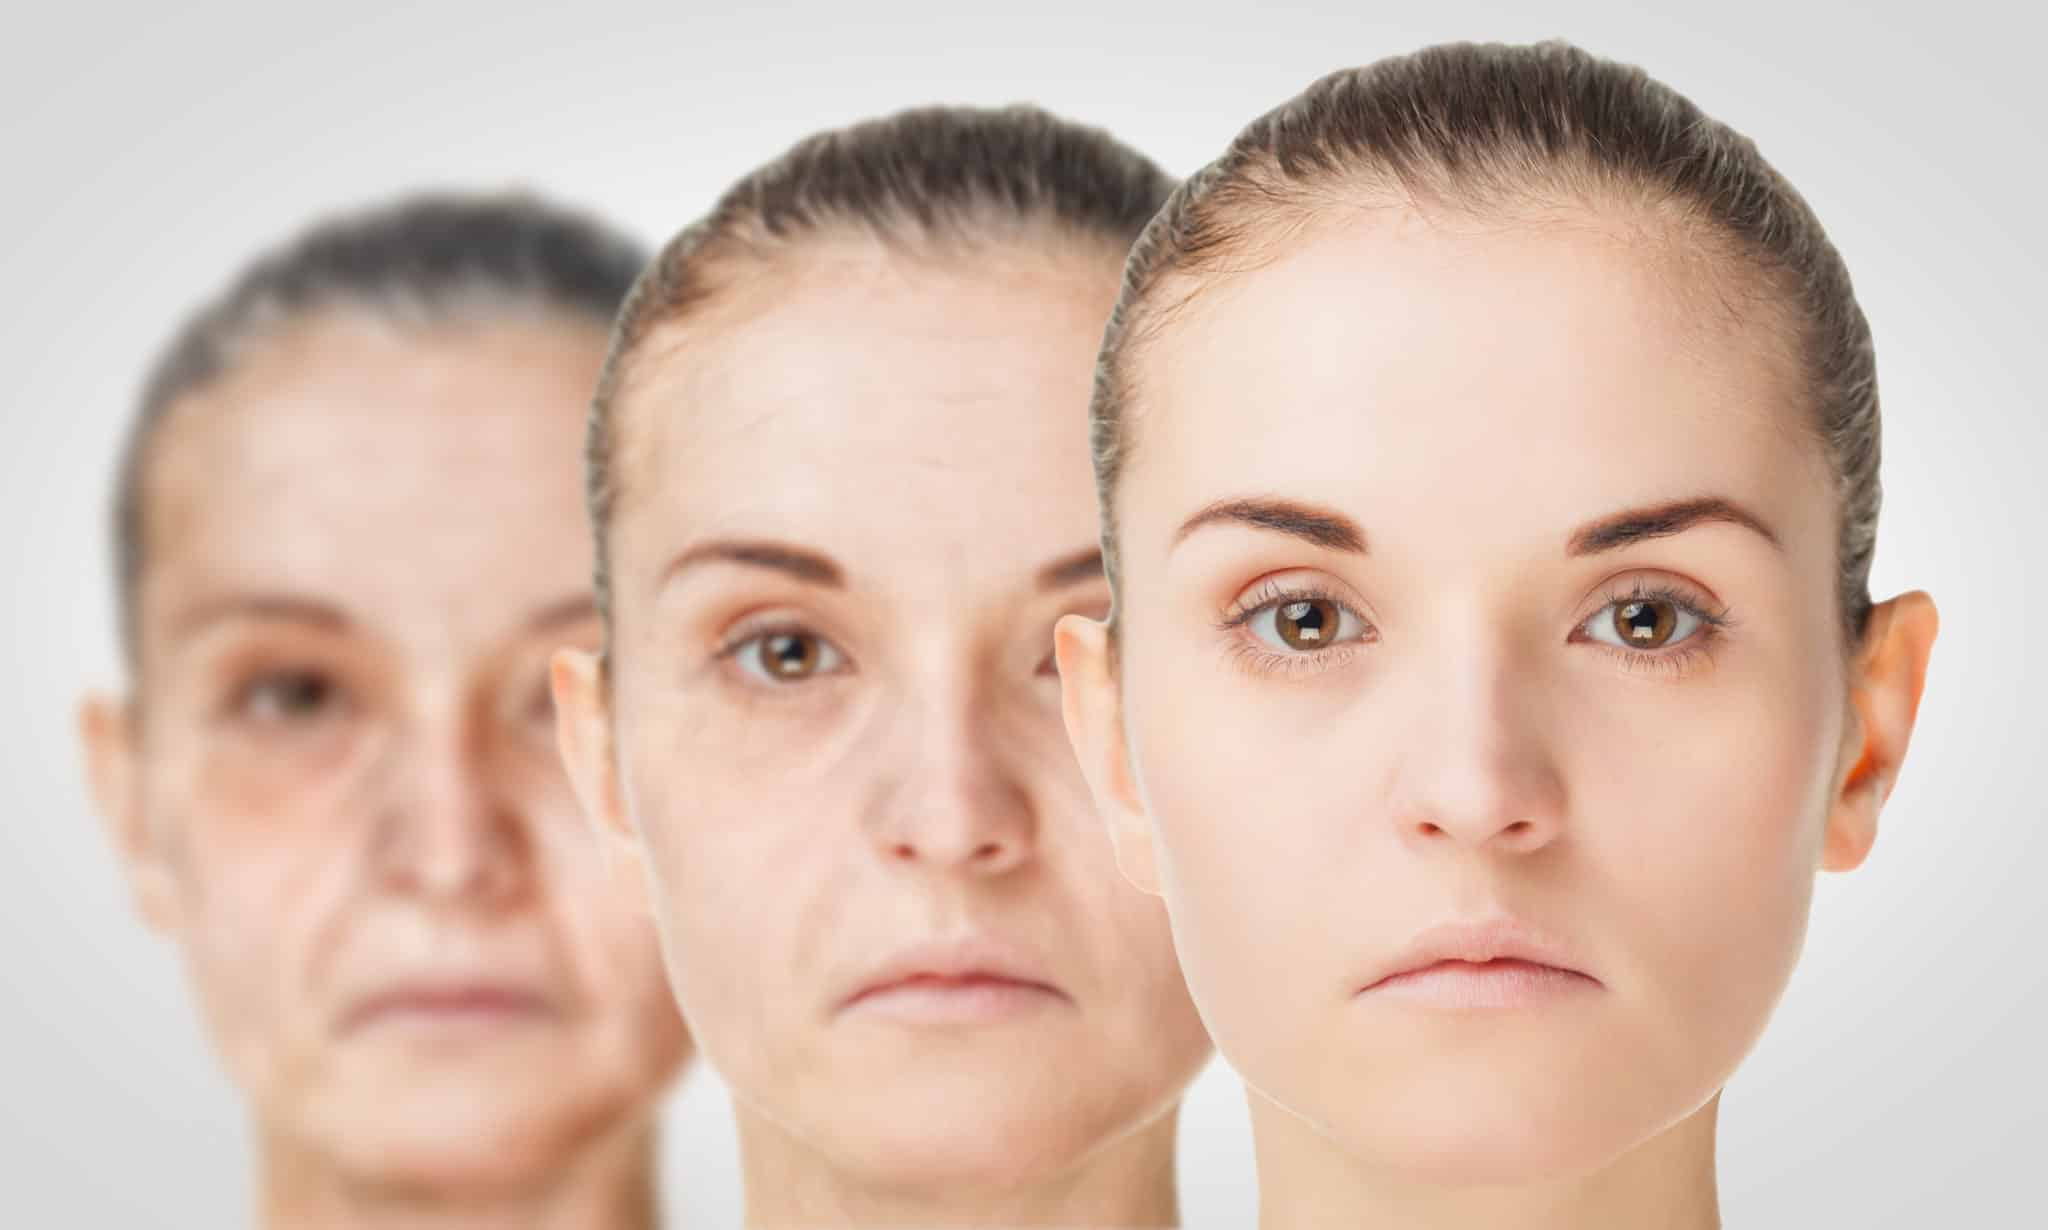 Useful Tips of Younger Looking Skin for Women Over 50